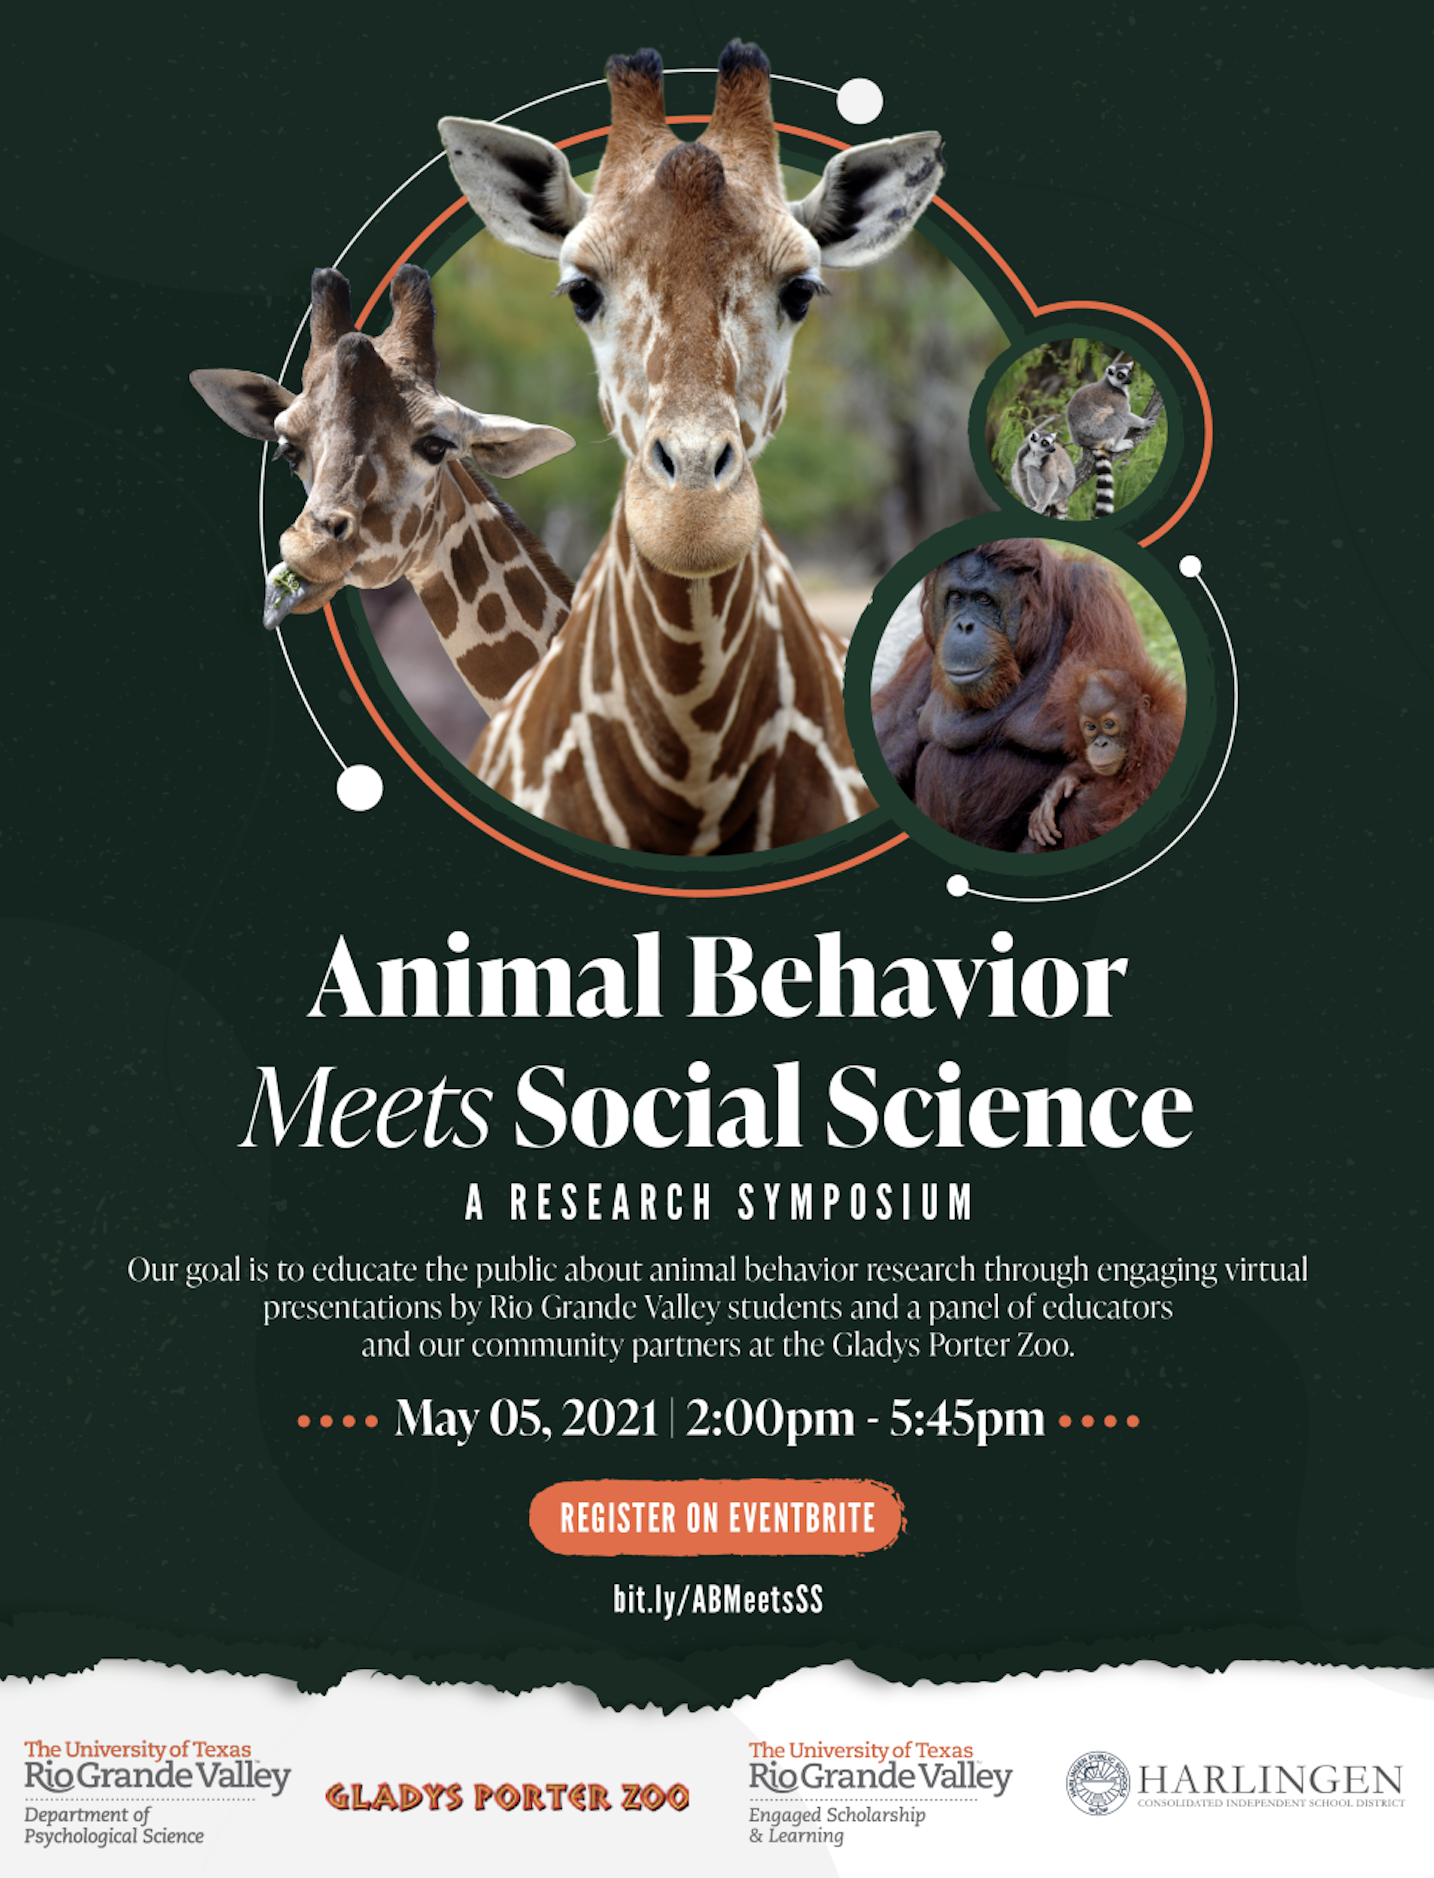 Animal Behavior Meets Social Science: A Research Symposium